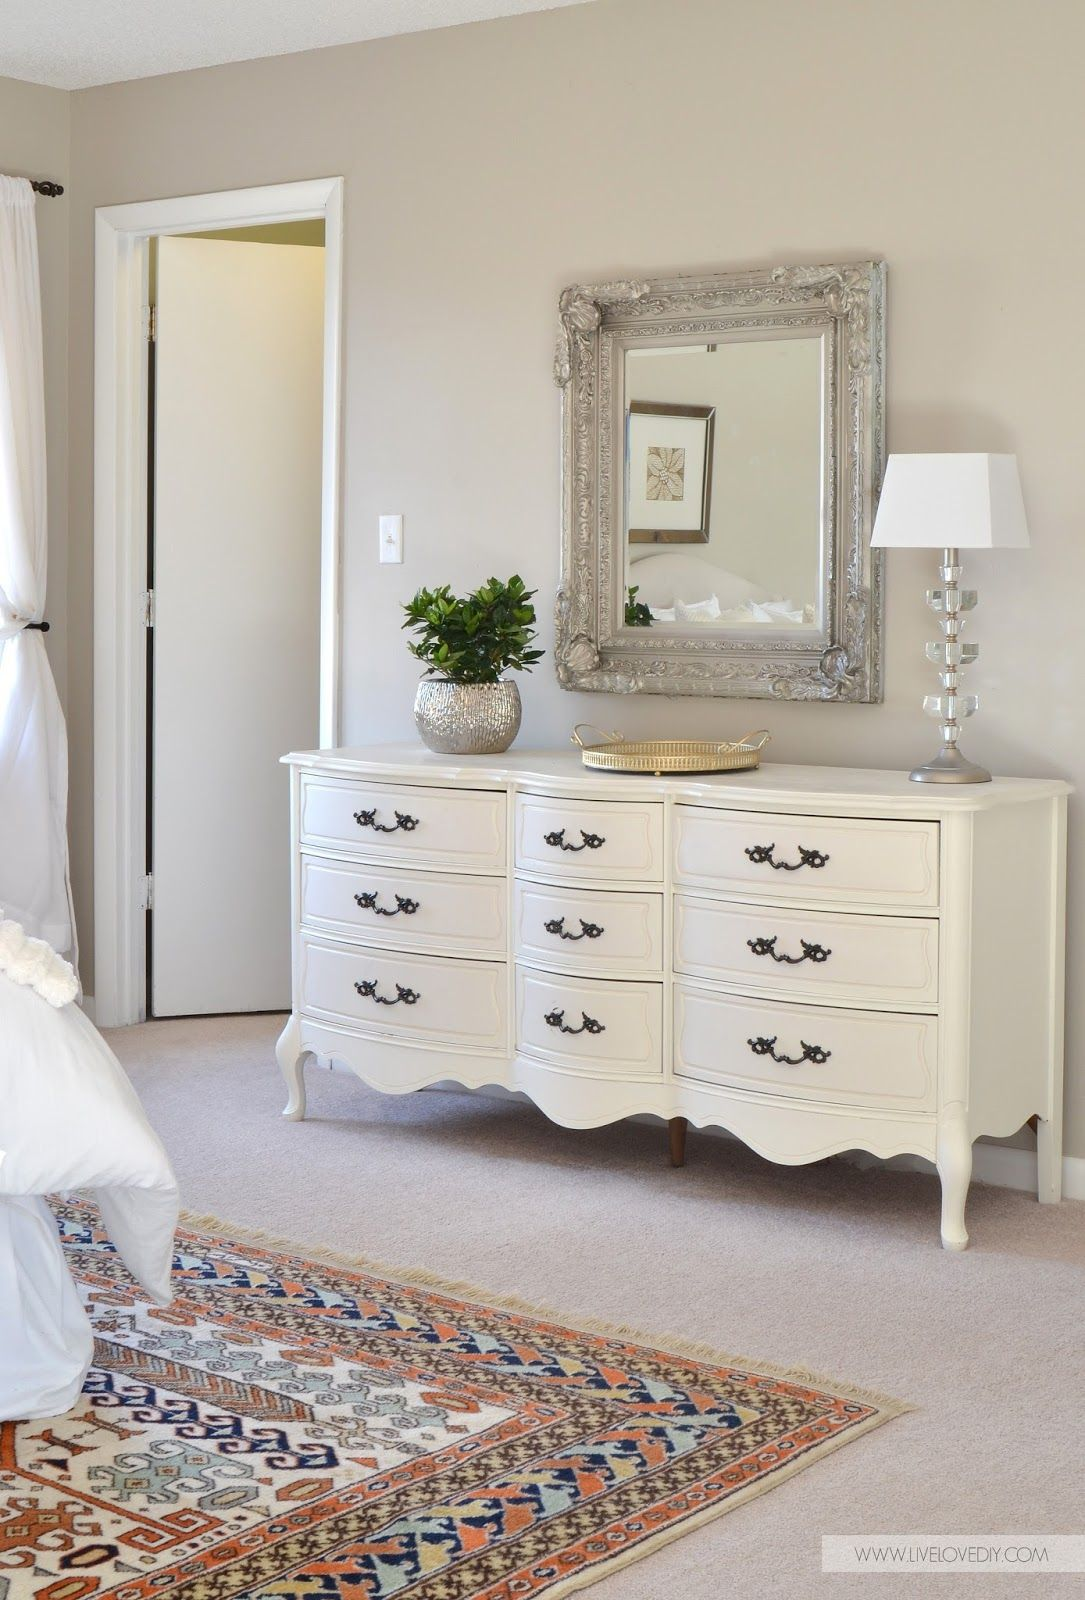 12 simple ways to update your master bedroom - Diy Bedroom Decorating